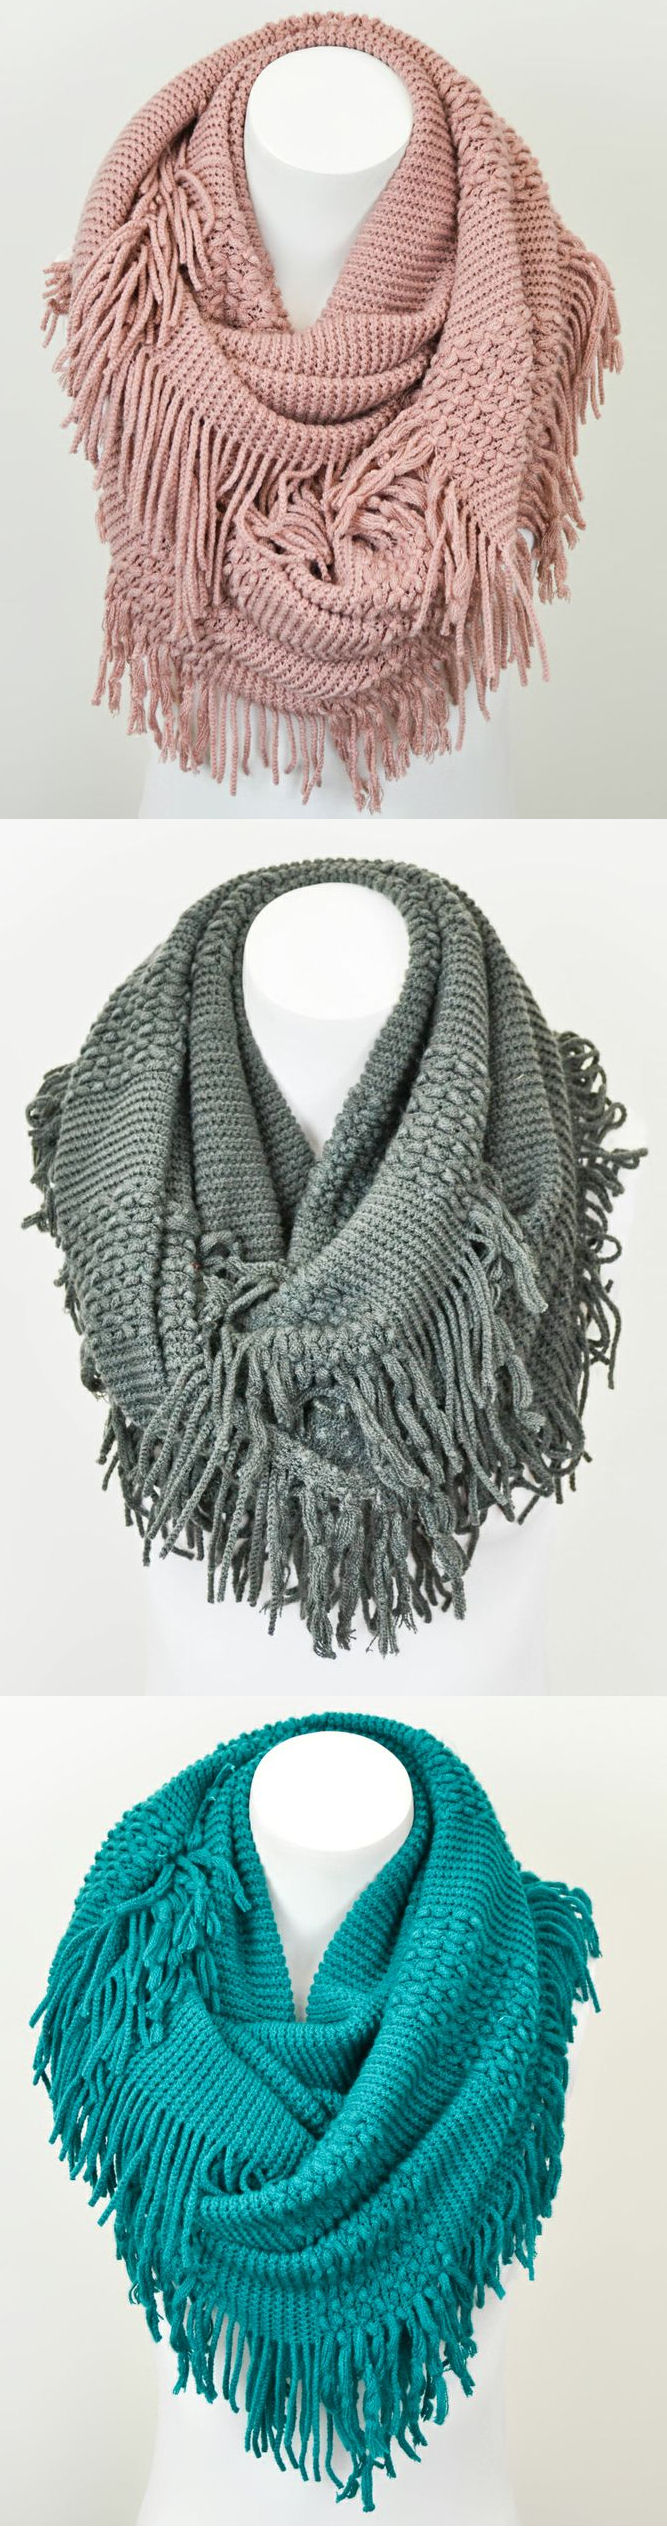 Fun Fringe Infinity Scarves! ♥ | Cute Outfits and Accessories ...